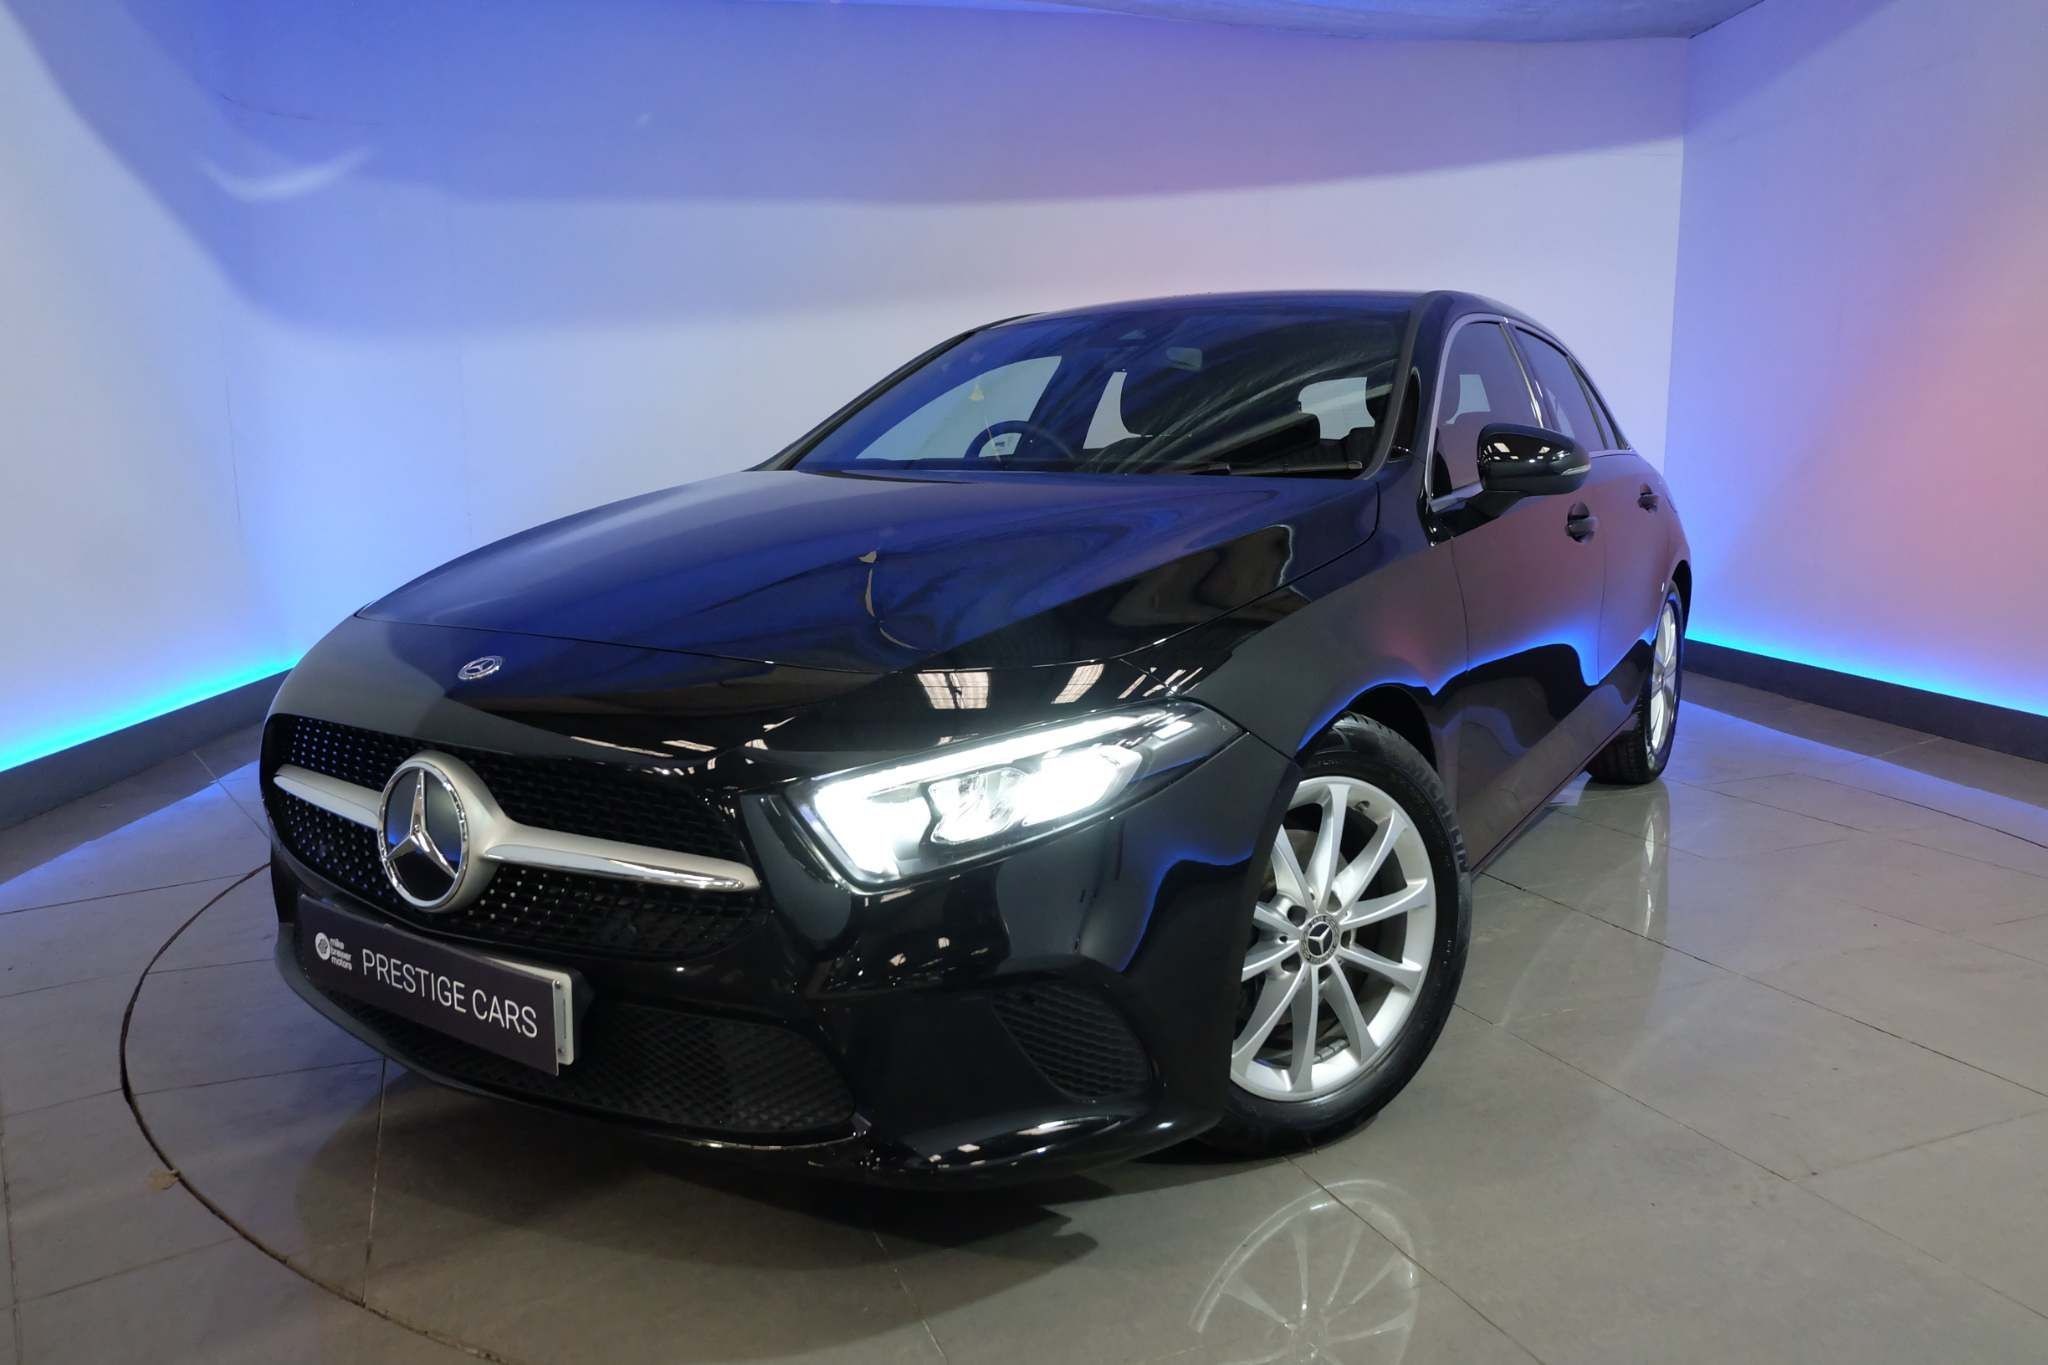 Used Mercedes-Benz A Class 1.3 A180 Sport (s/s) 5dr